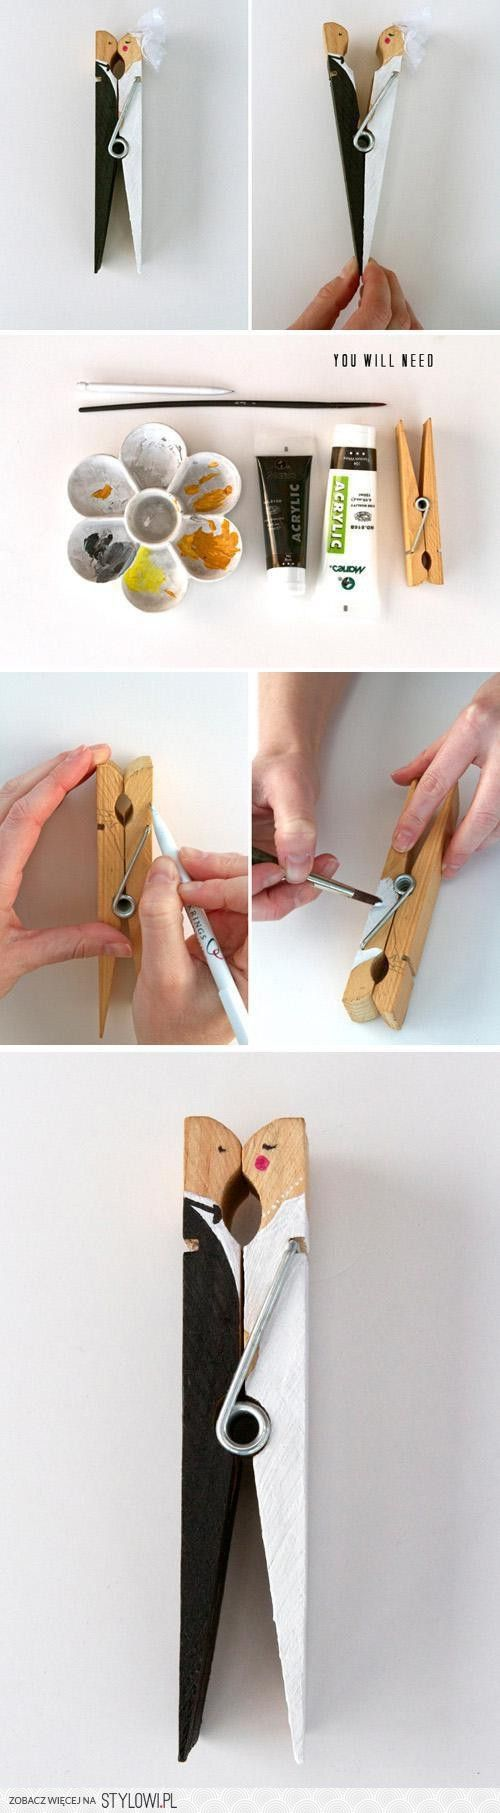 Hehe I could use this to help wrap a gift to the groom